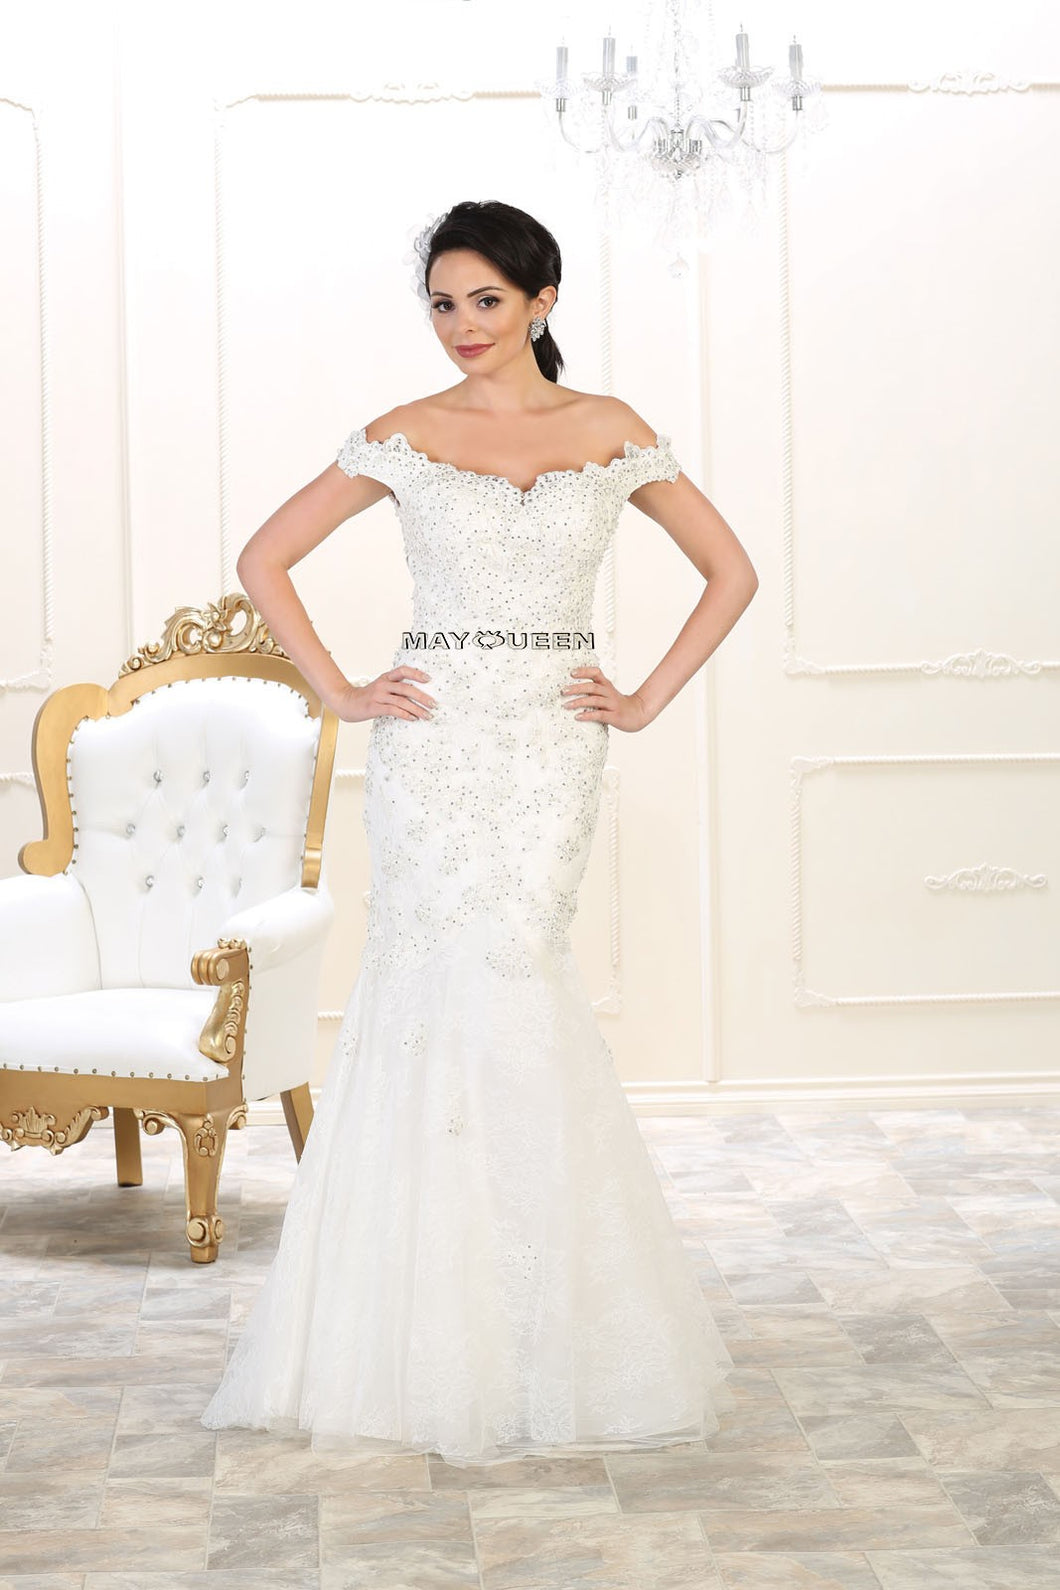 Mayqueen Size Chart E MQ 7493 - Off the Shoulders Beaded Lace Applique Mermaid with Trumpet Skirt - Diggz Prom